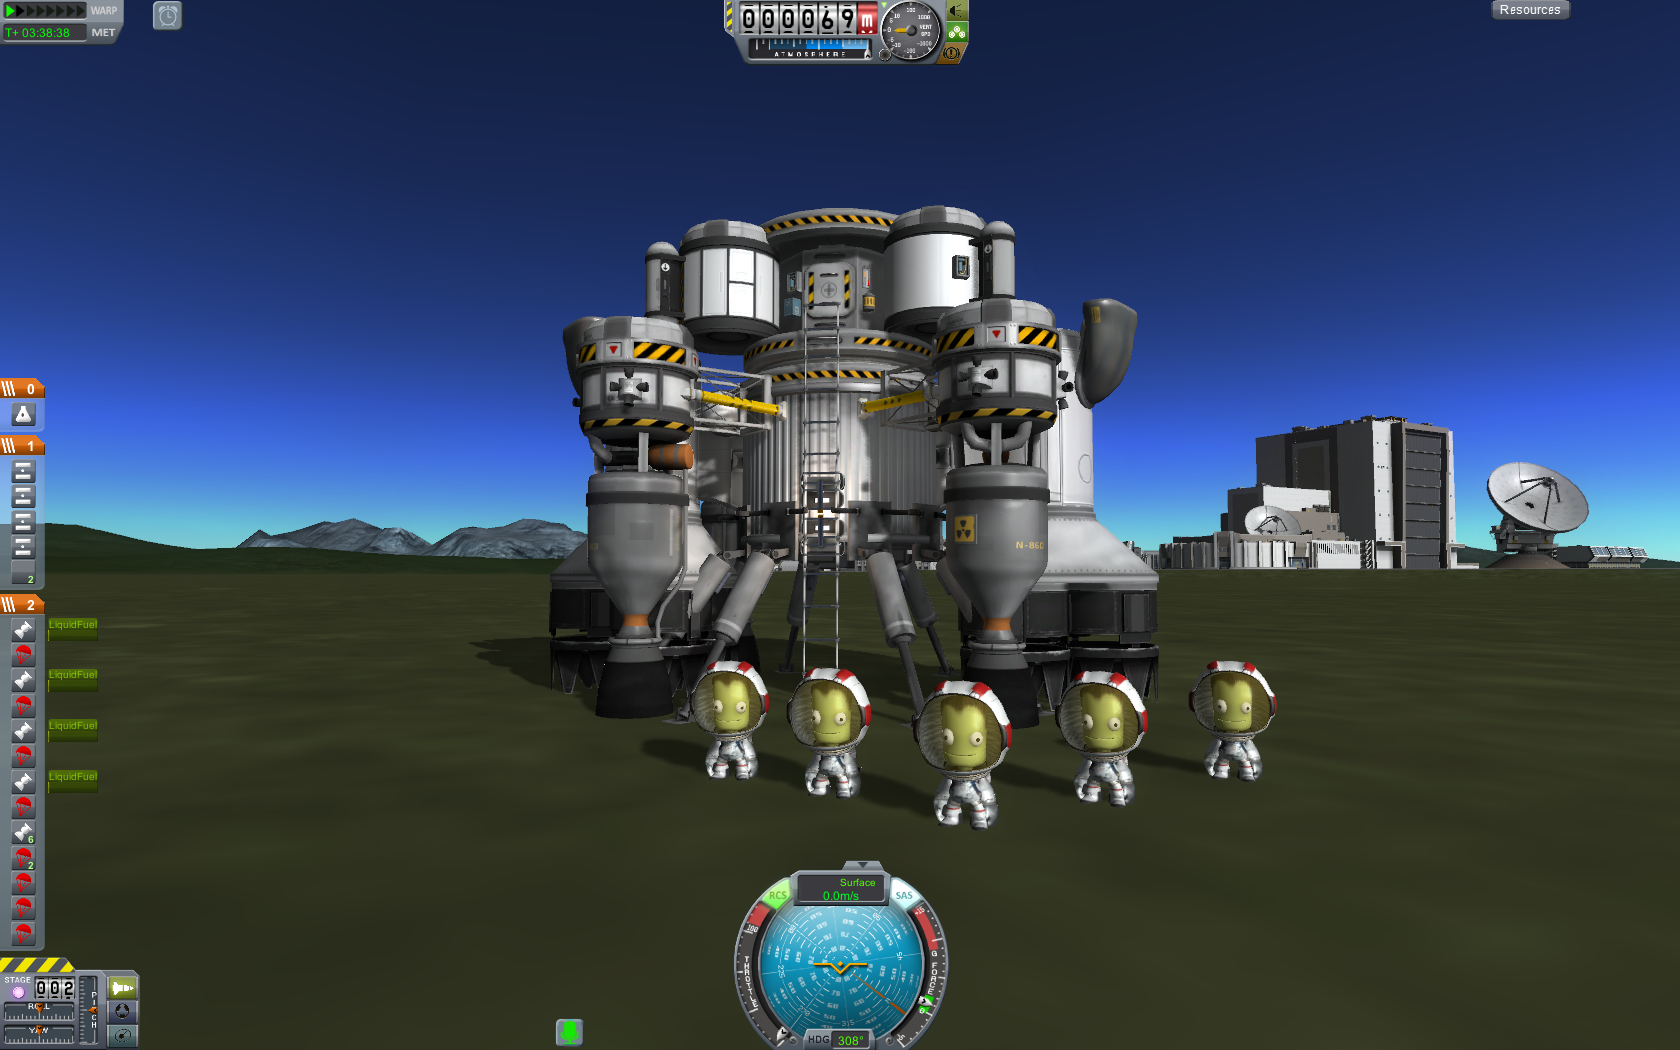 kerbal space program nuclear engine - photo #42